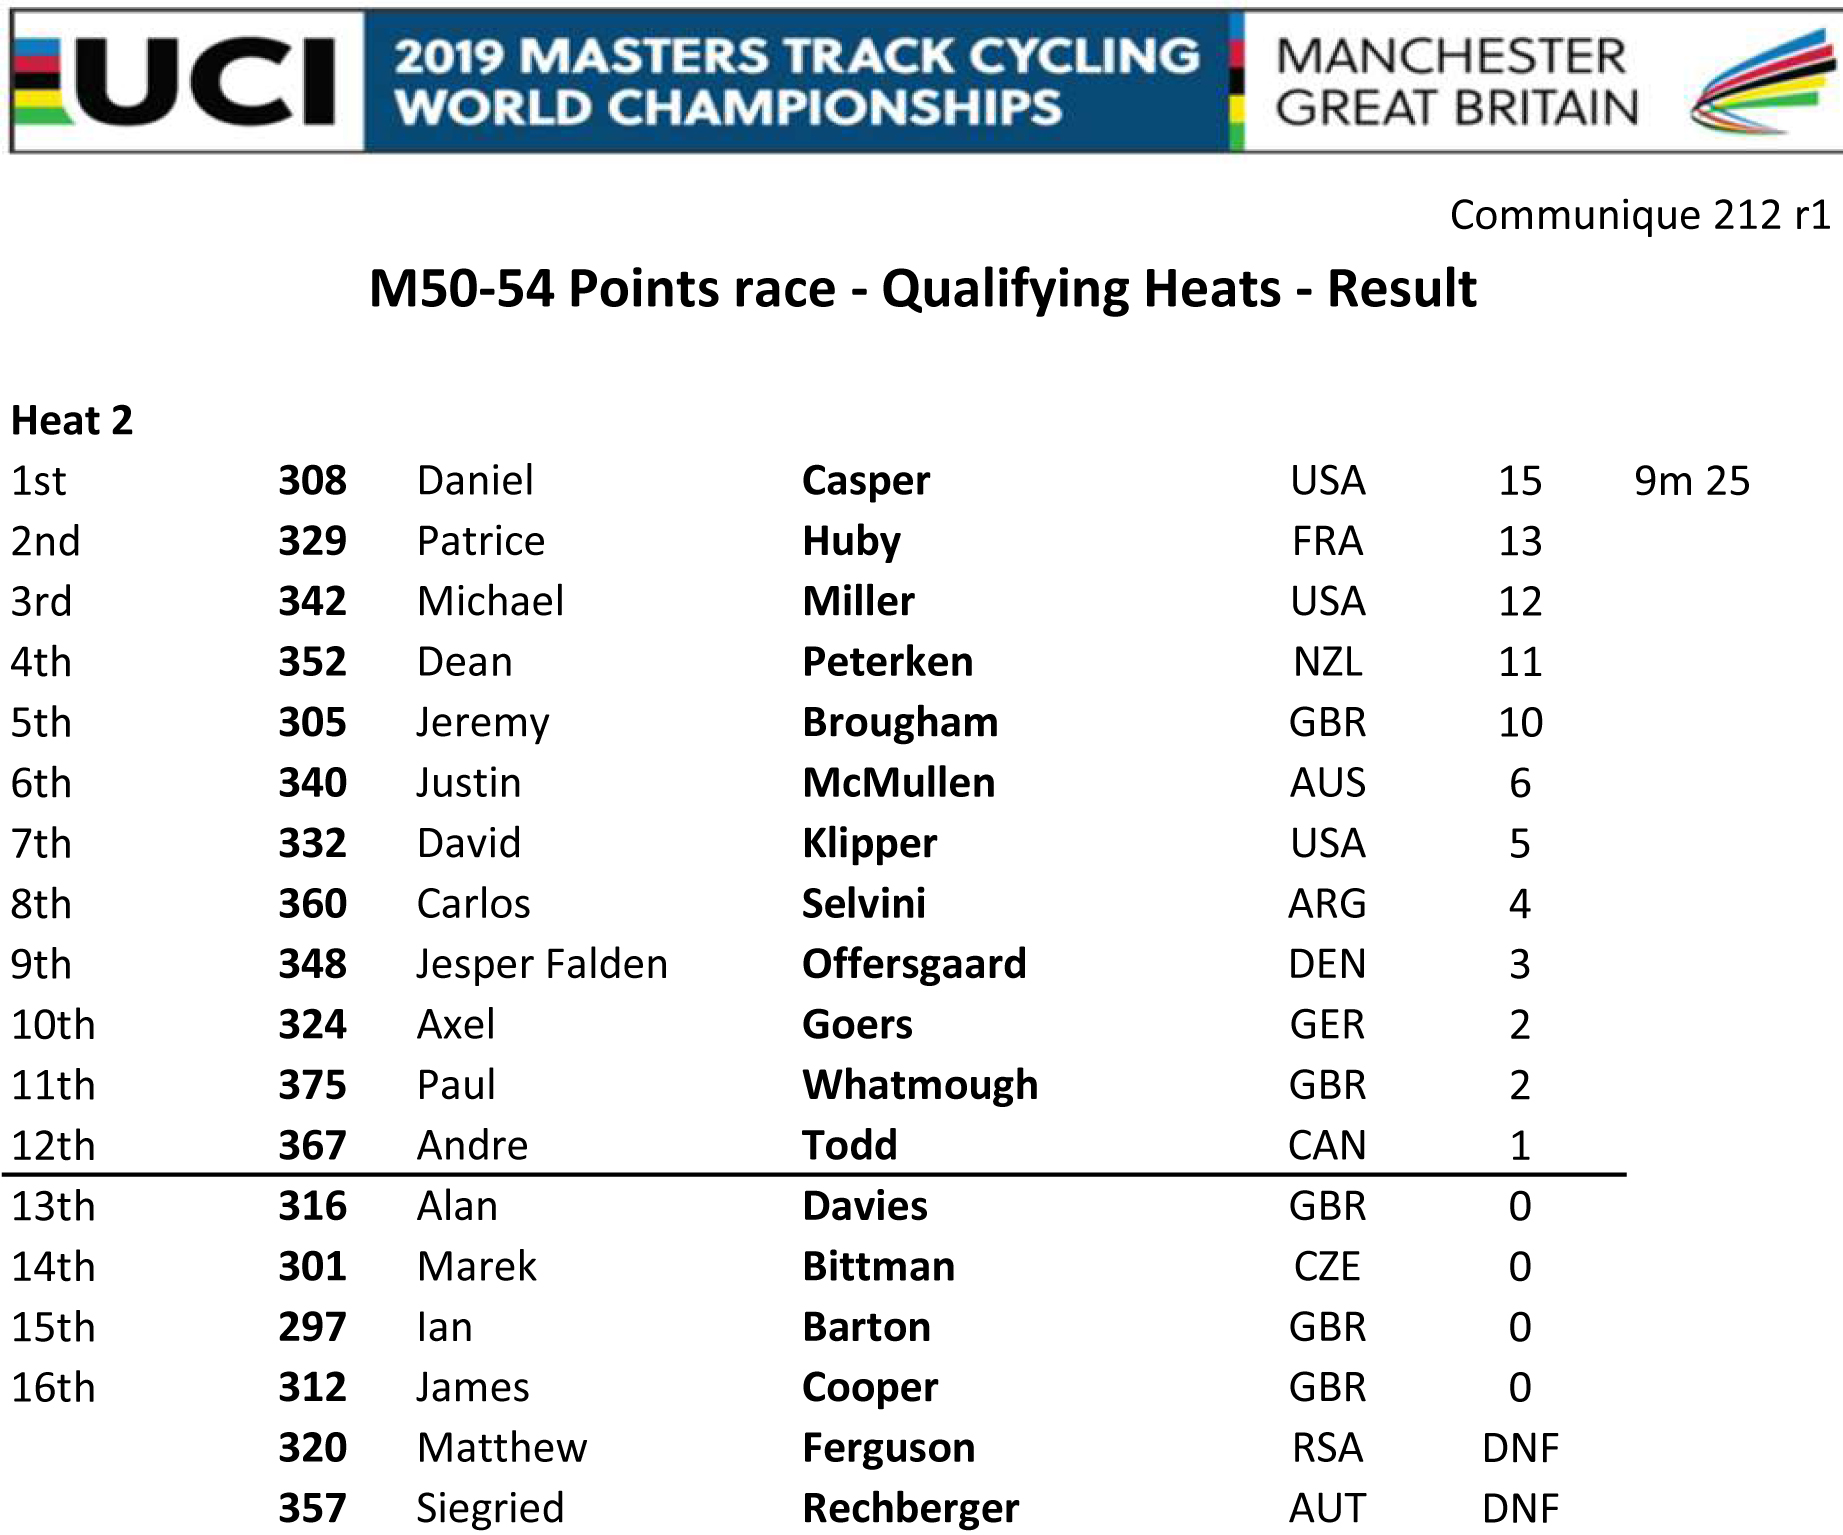 M5054 POINTS RACE QUAL HEAT 2 RESULT rectification